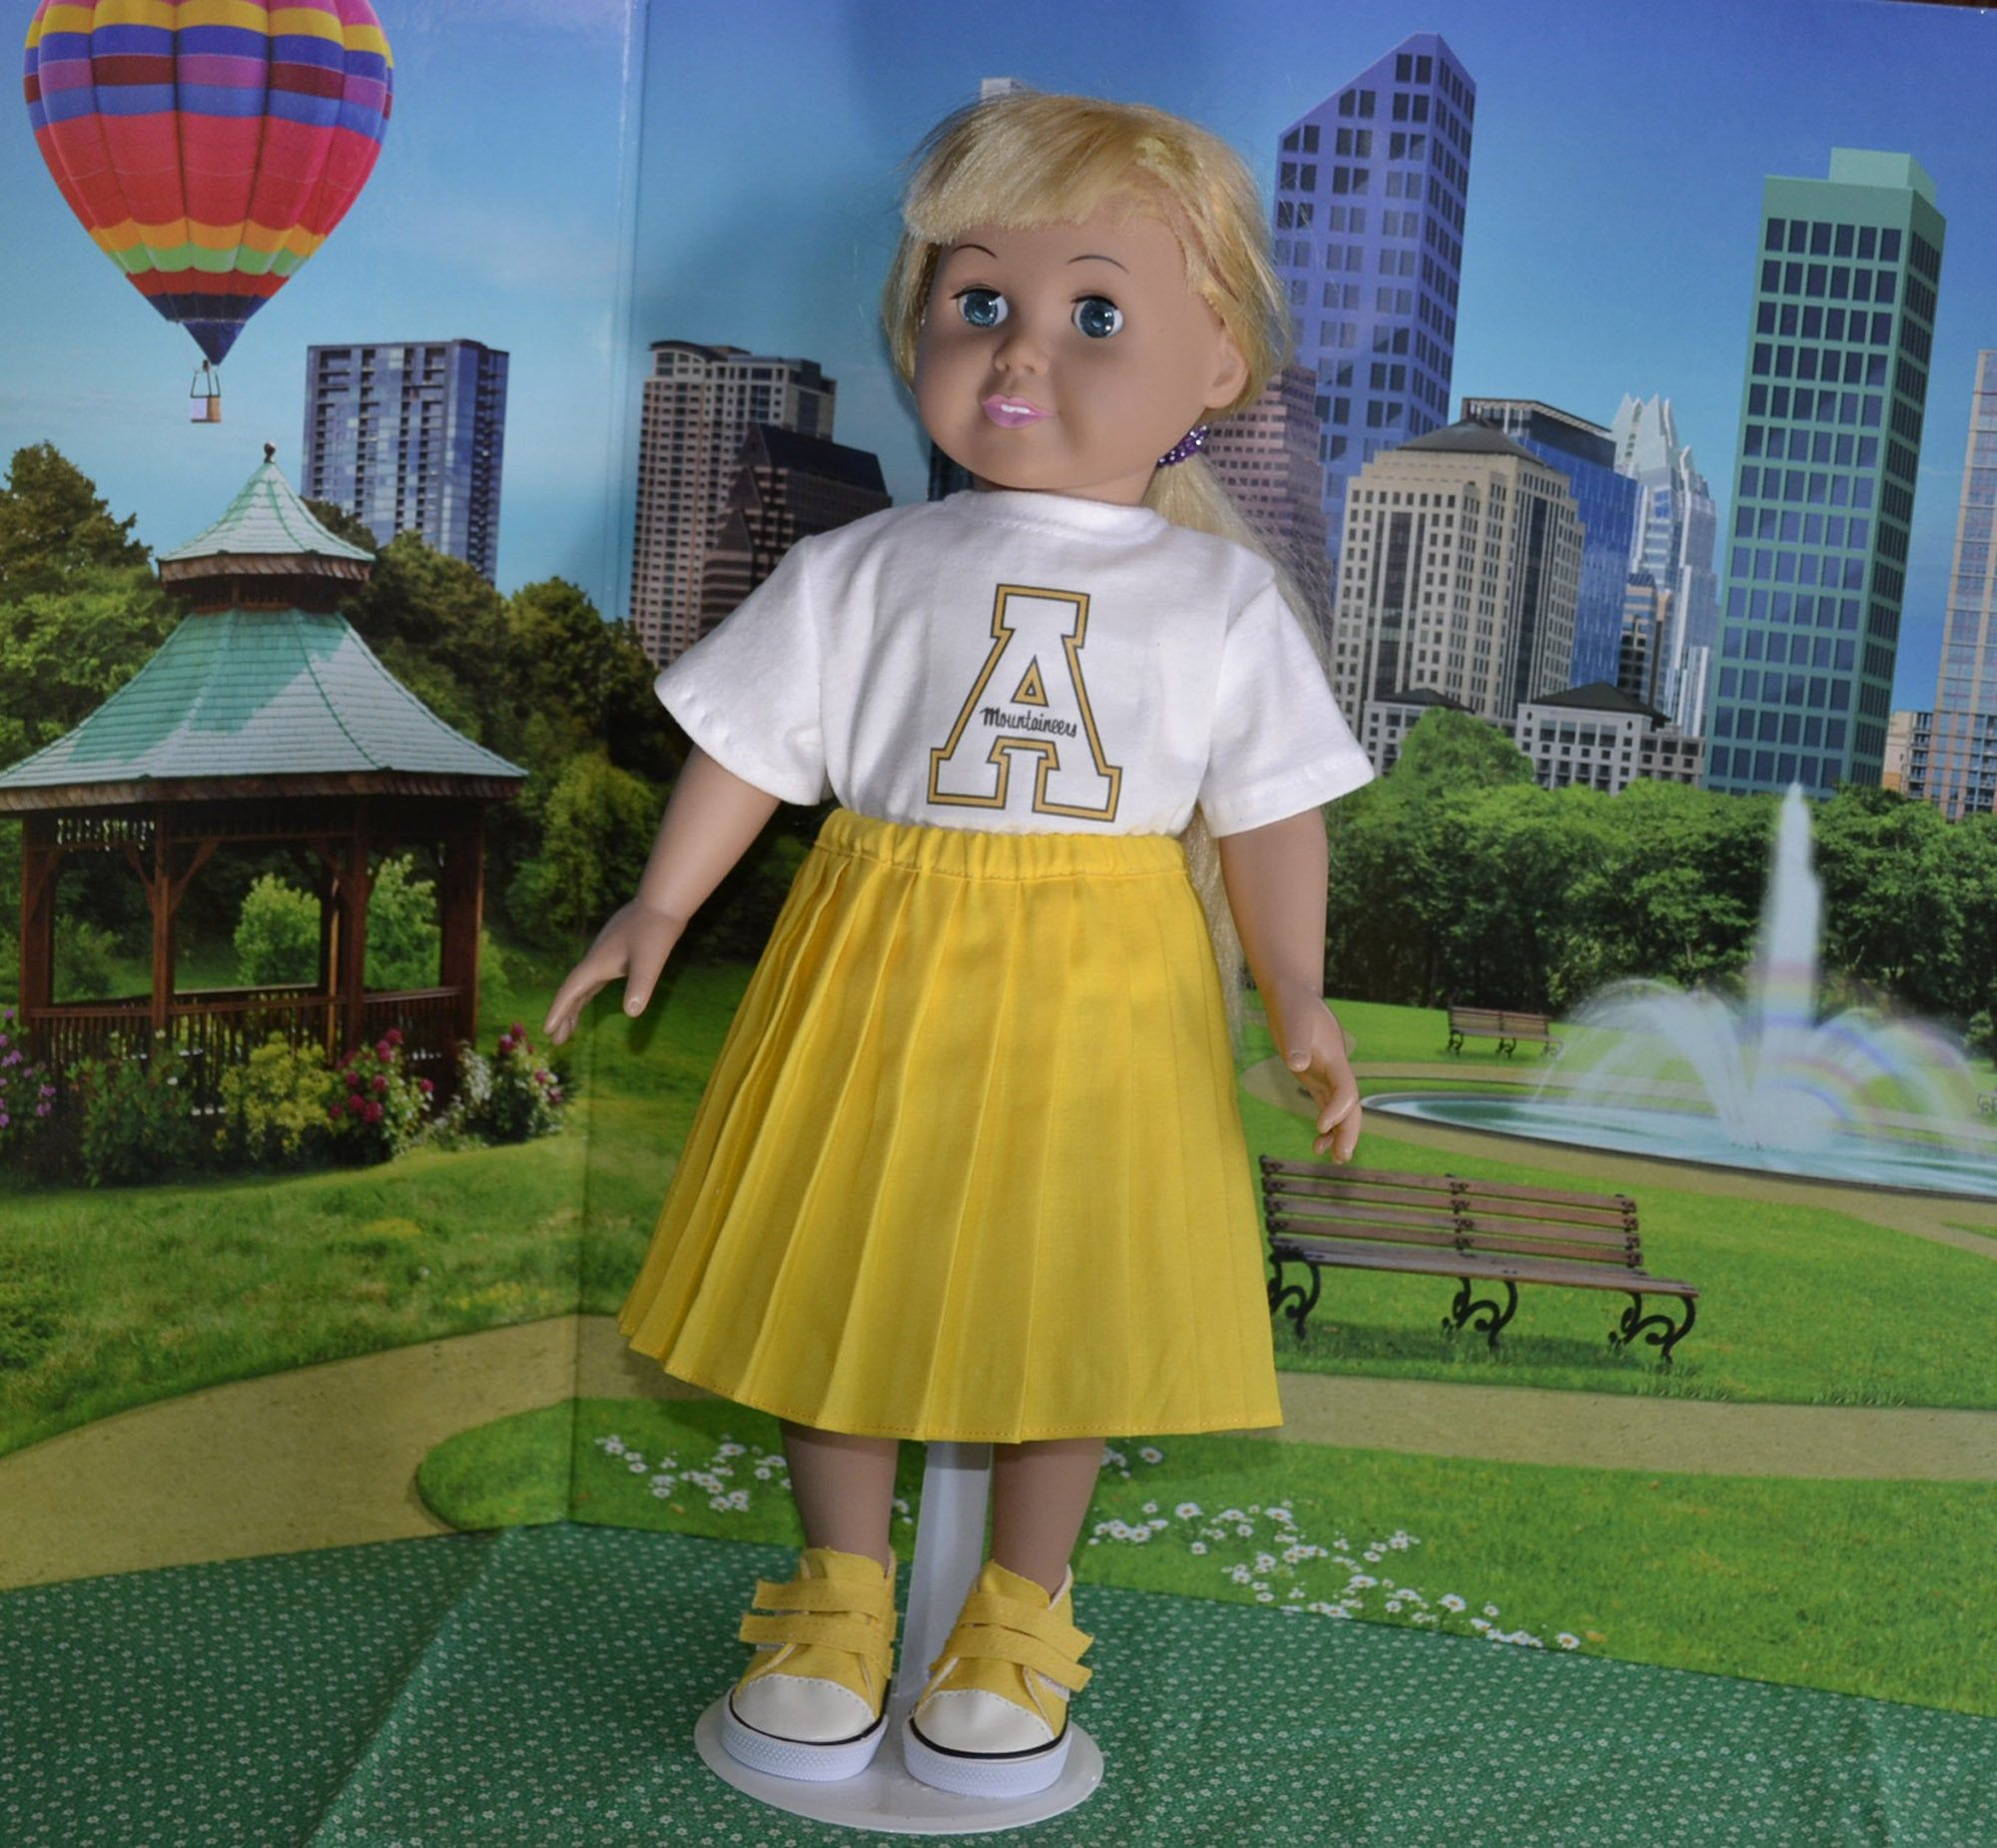 Appalachian Cheerleader Outfit 18 inch doll clothes #18inchdollsandclothes